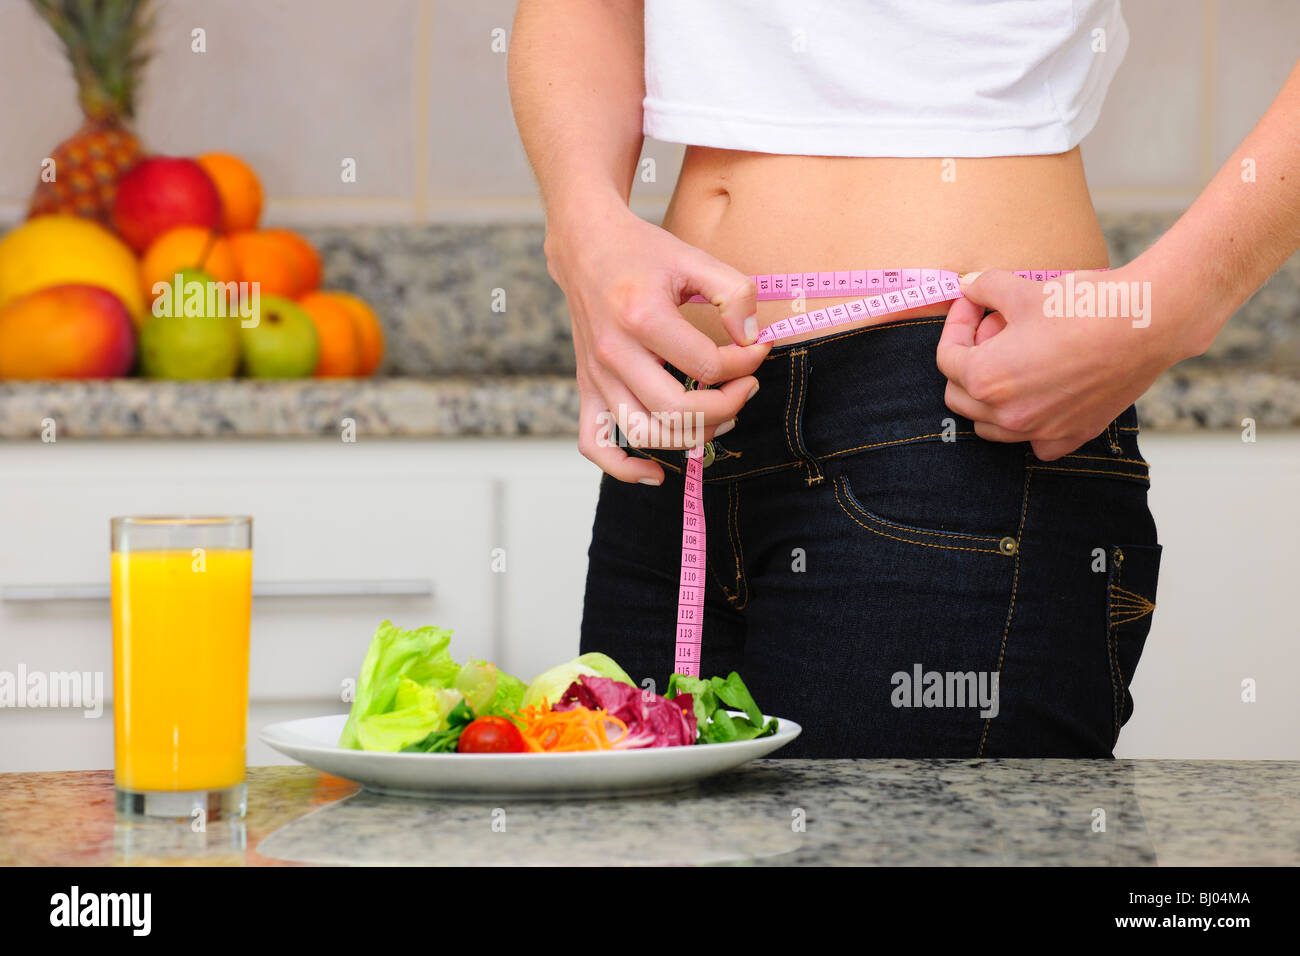 woman measuring her waist with a tape measure - Stock Image